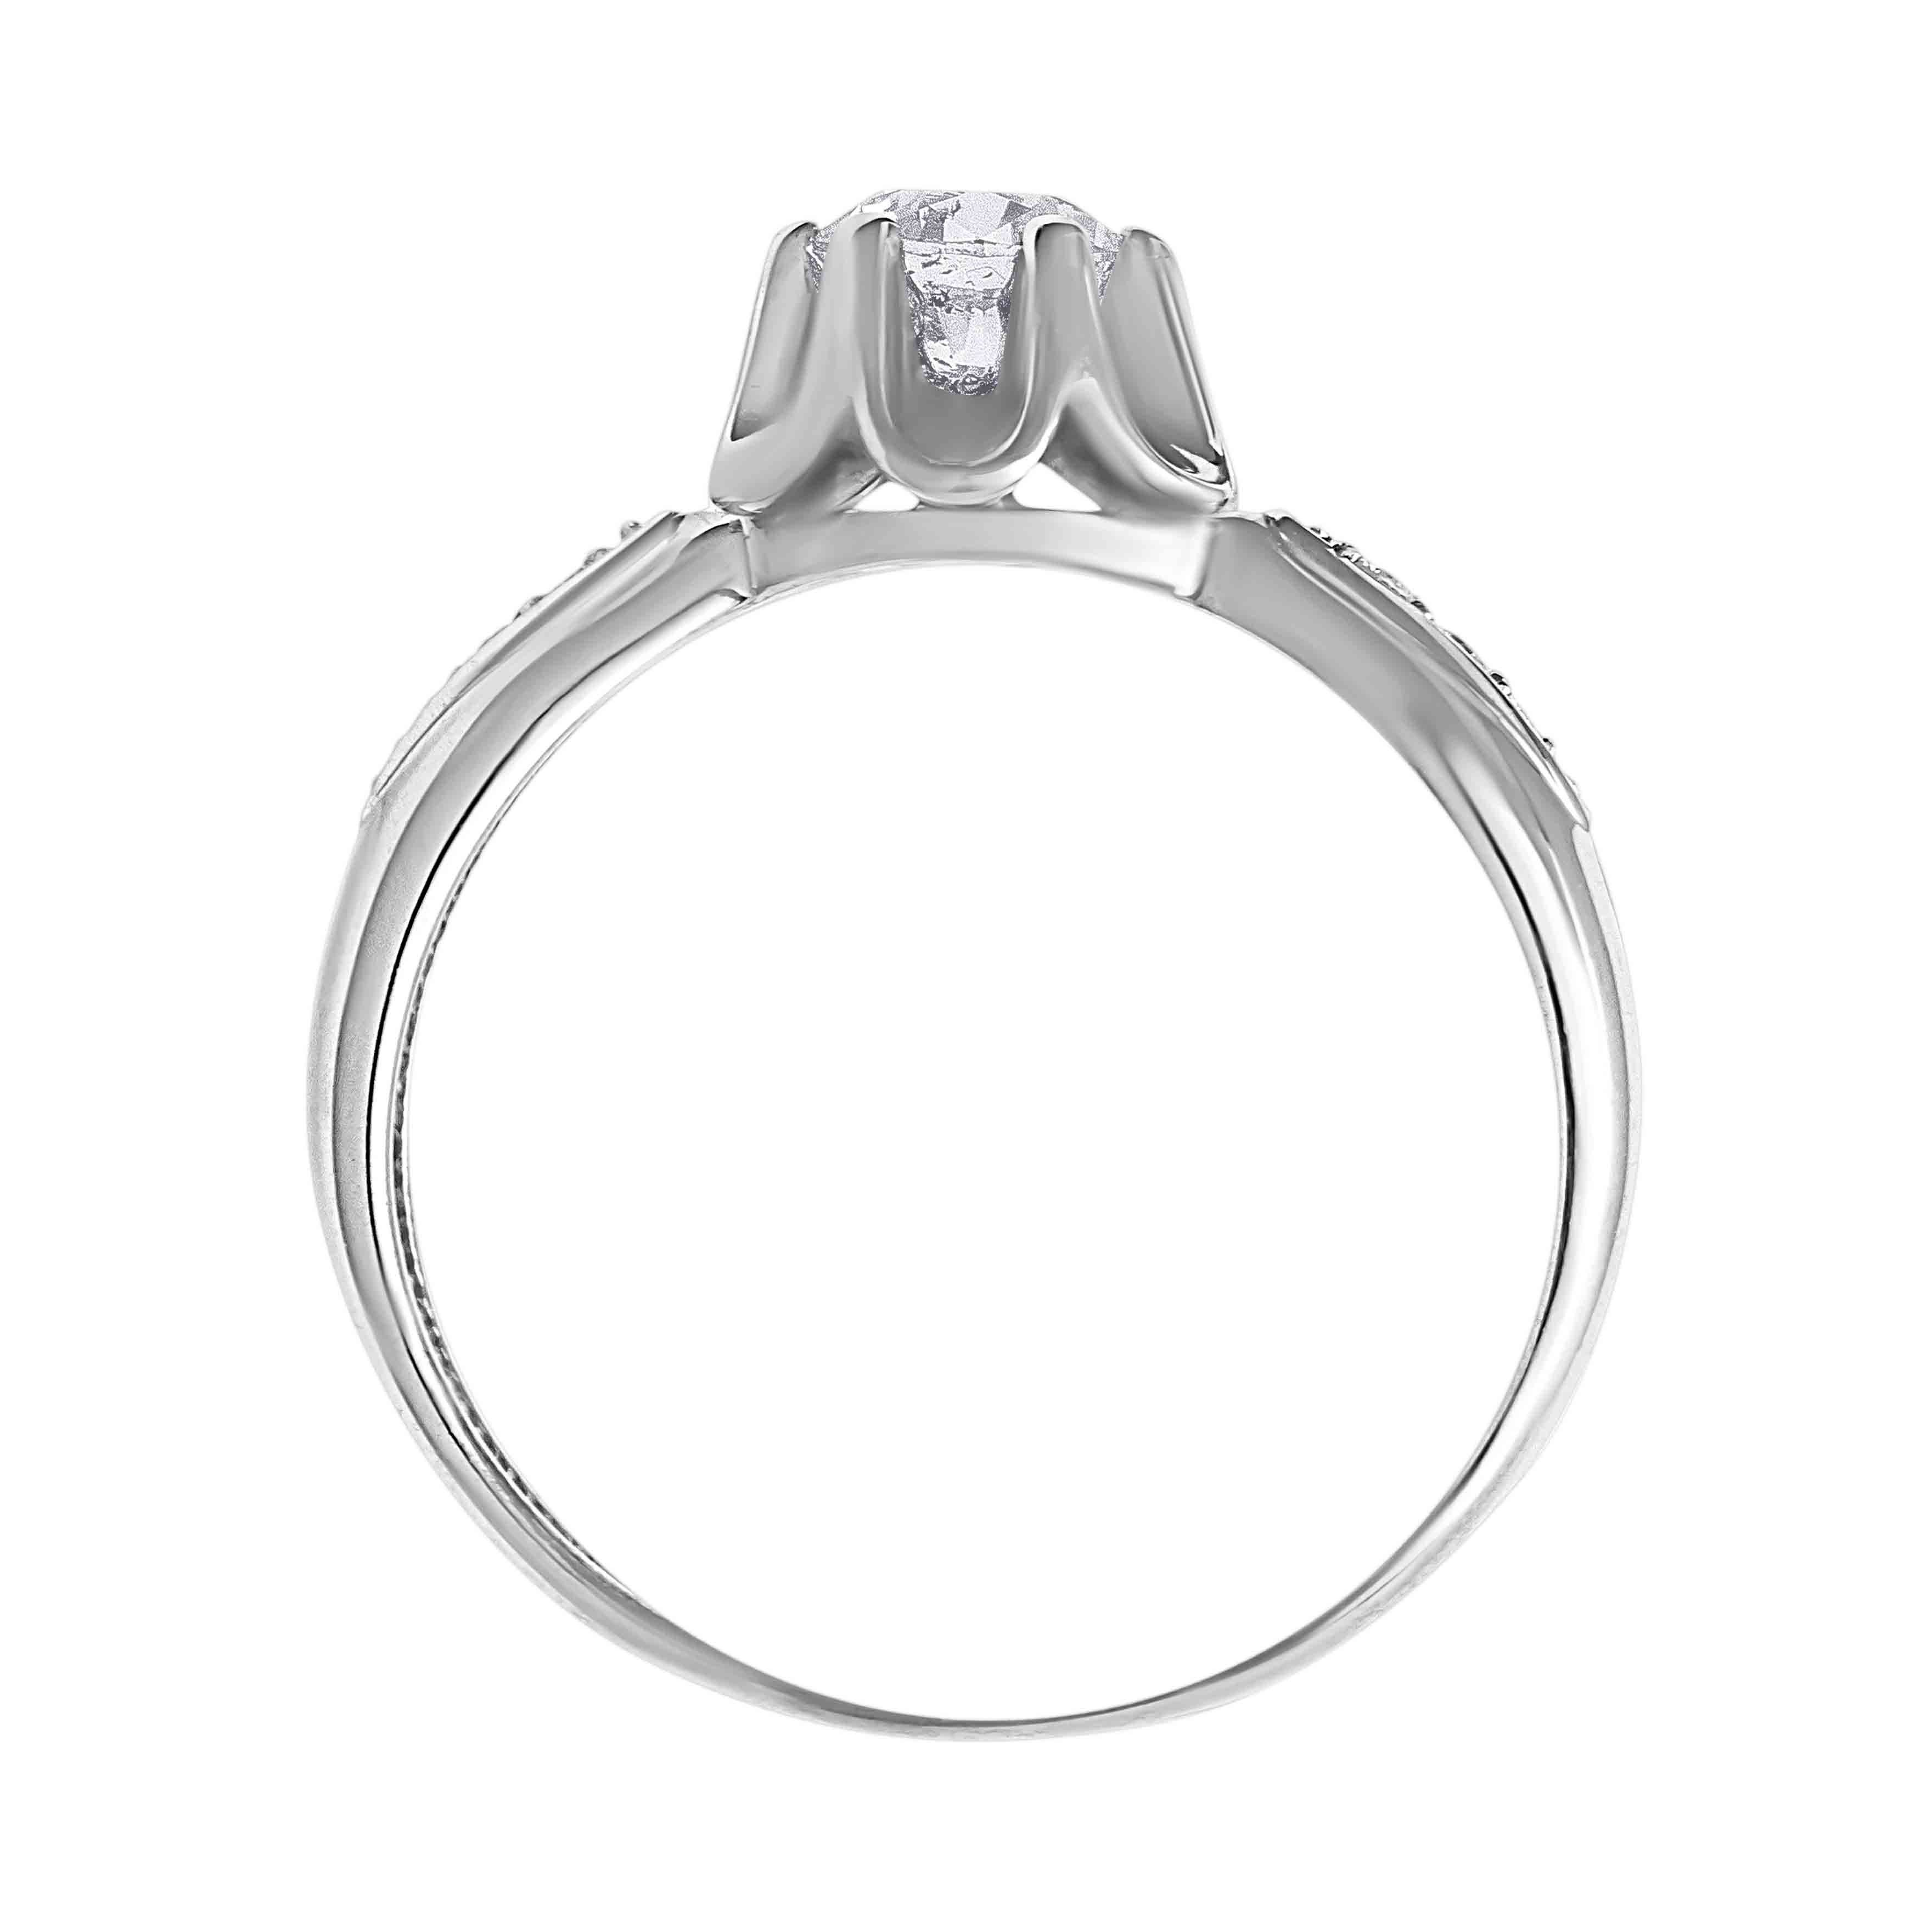 'Undimmed Radiance' 0.6ct Diamond Engagement Ring. View 3